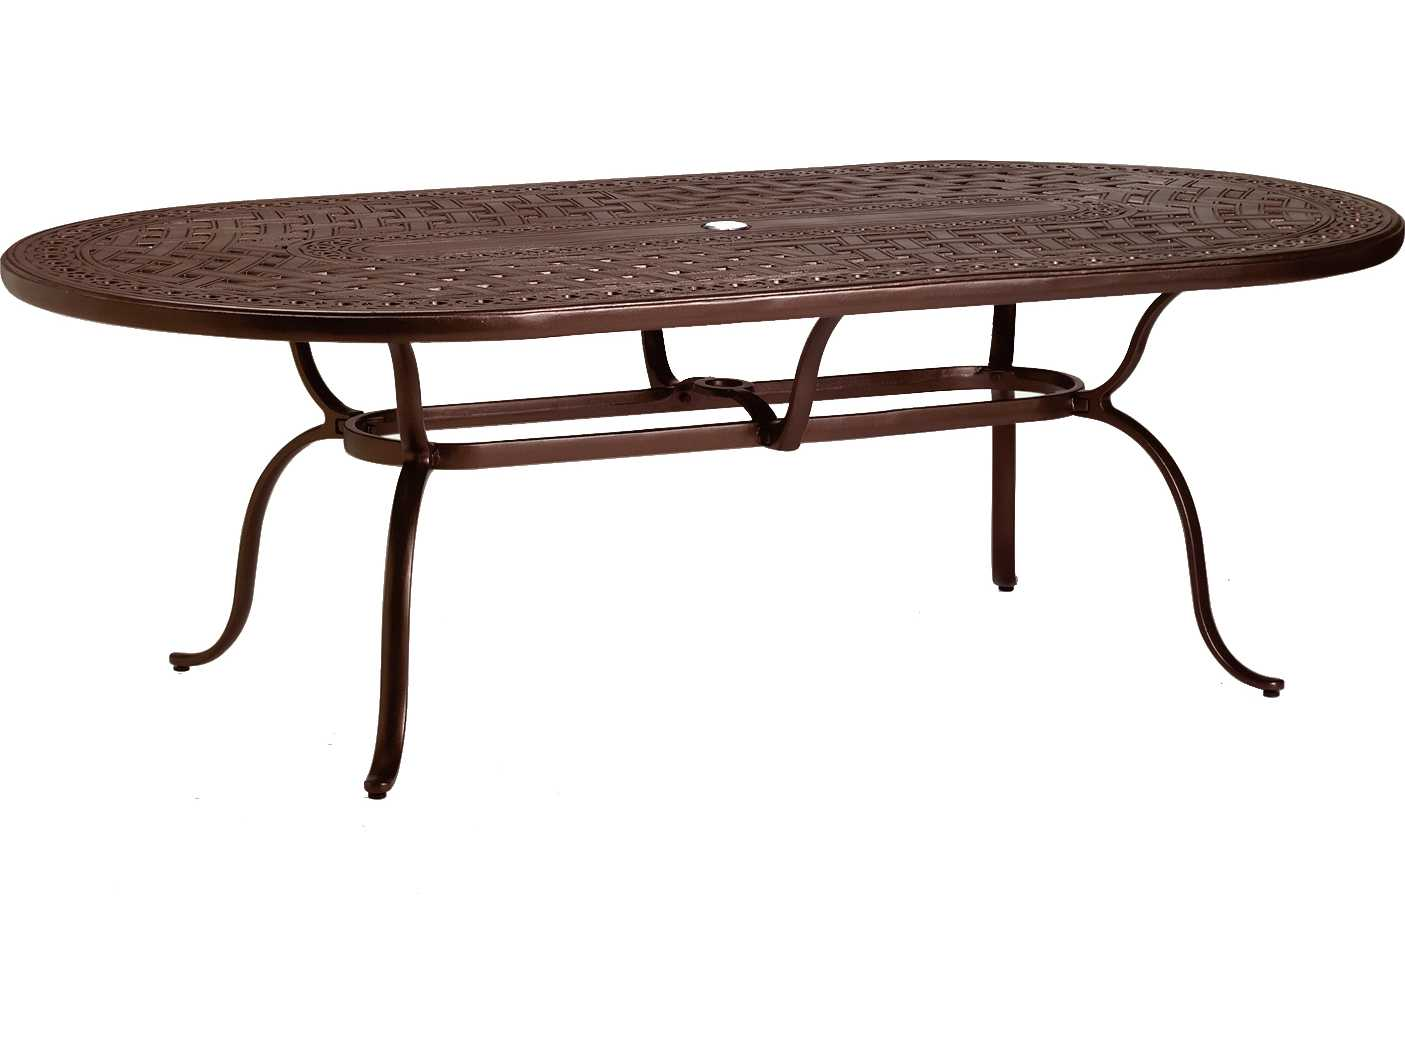 Tropitone kd garden terrace cast aluminum 85 x 43 oval for 85 dining table